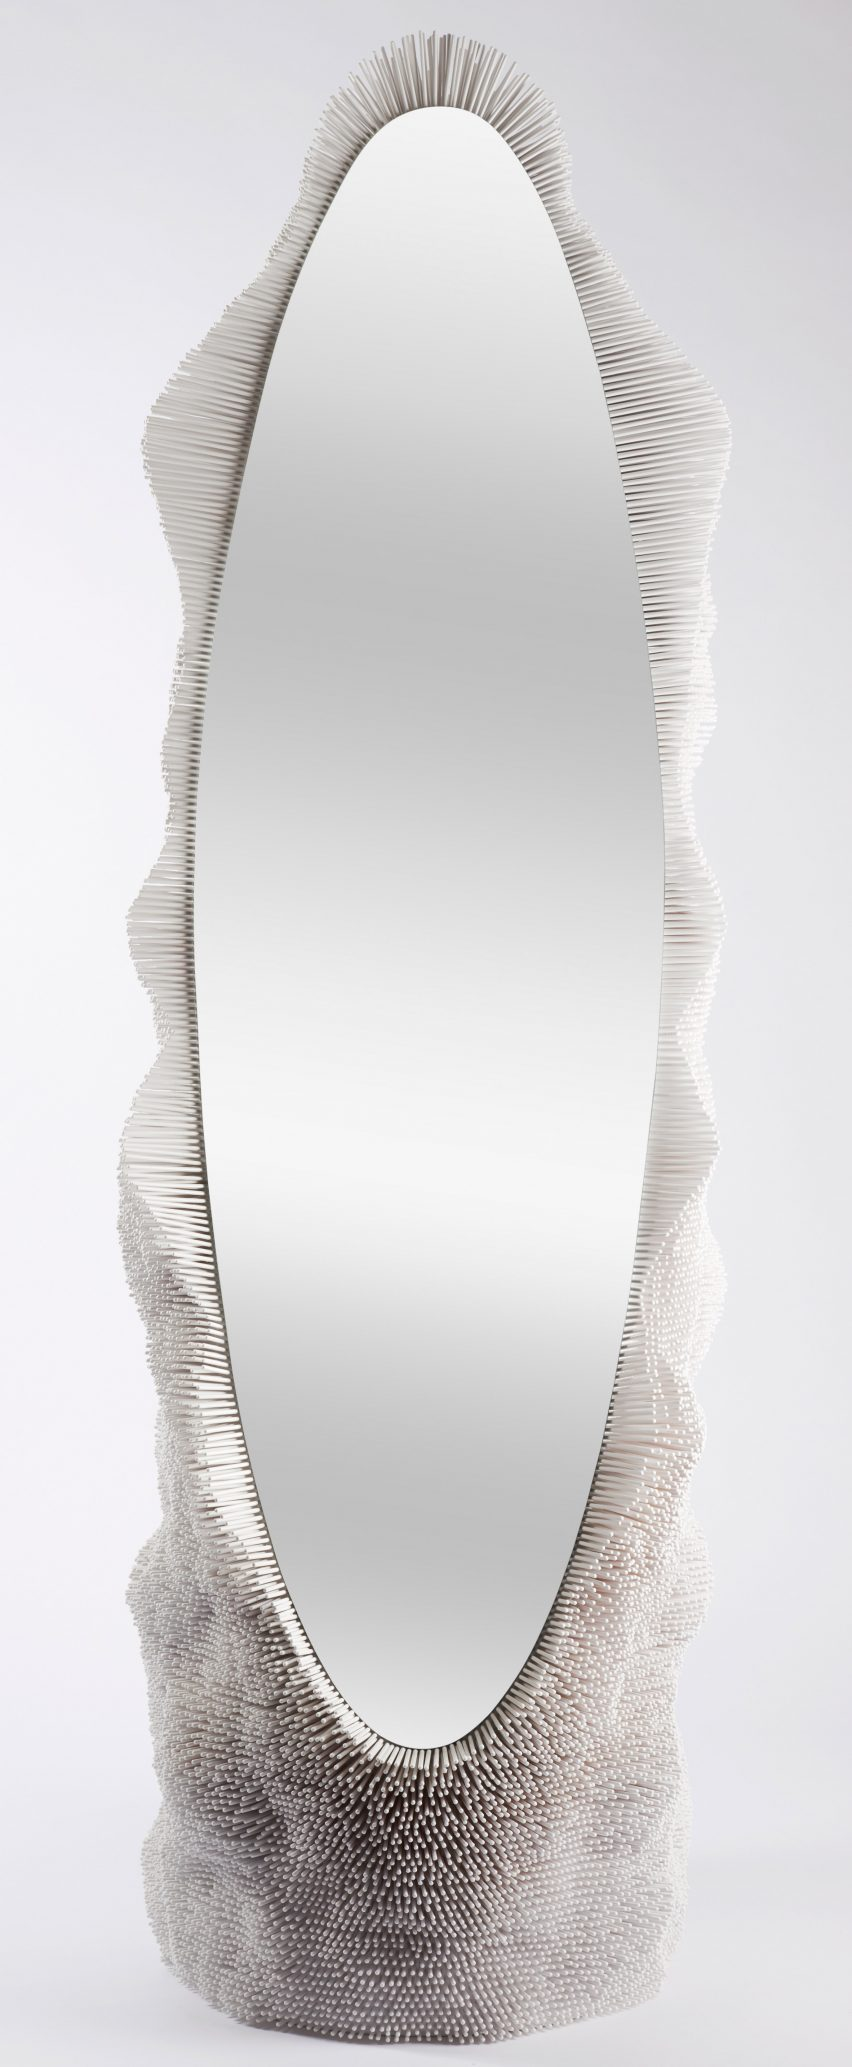 Pia Maria Raeder beech reed furniture for Galerie BSL